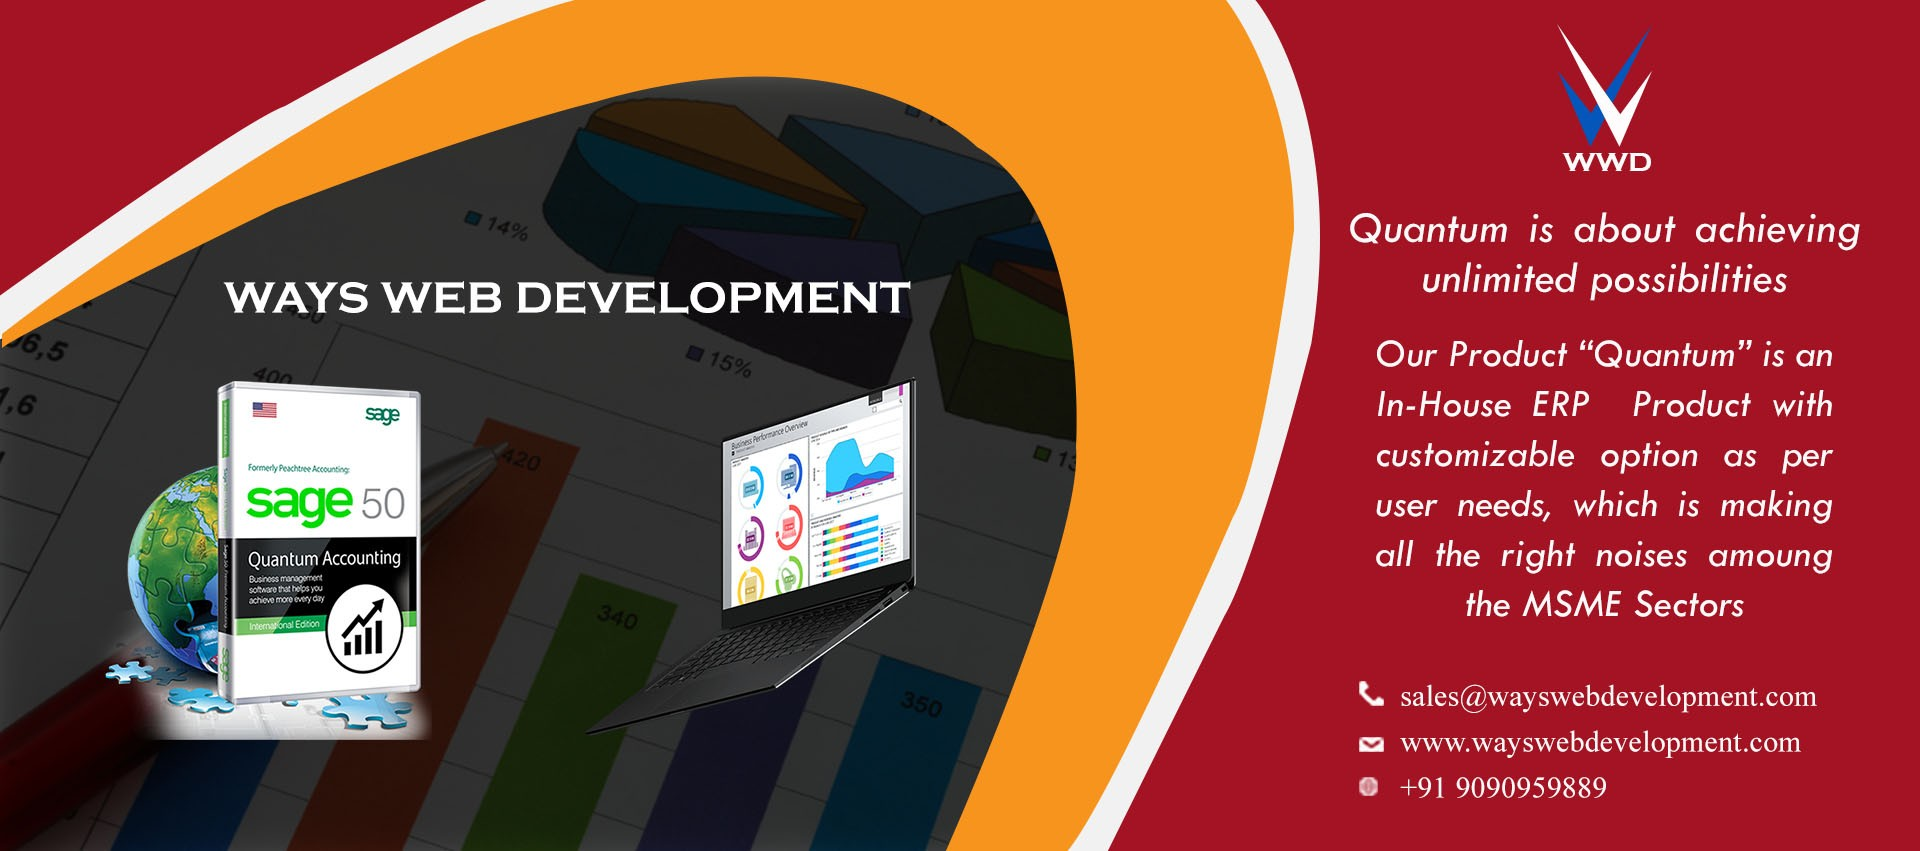 Ways Web Development